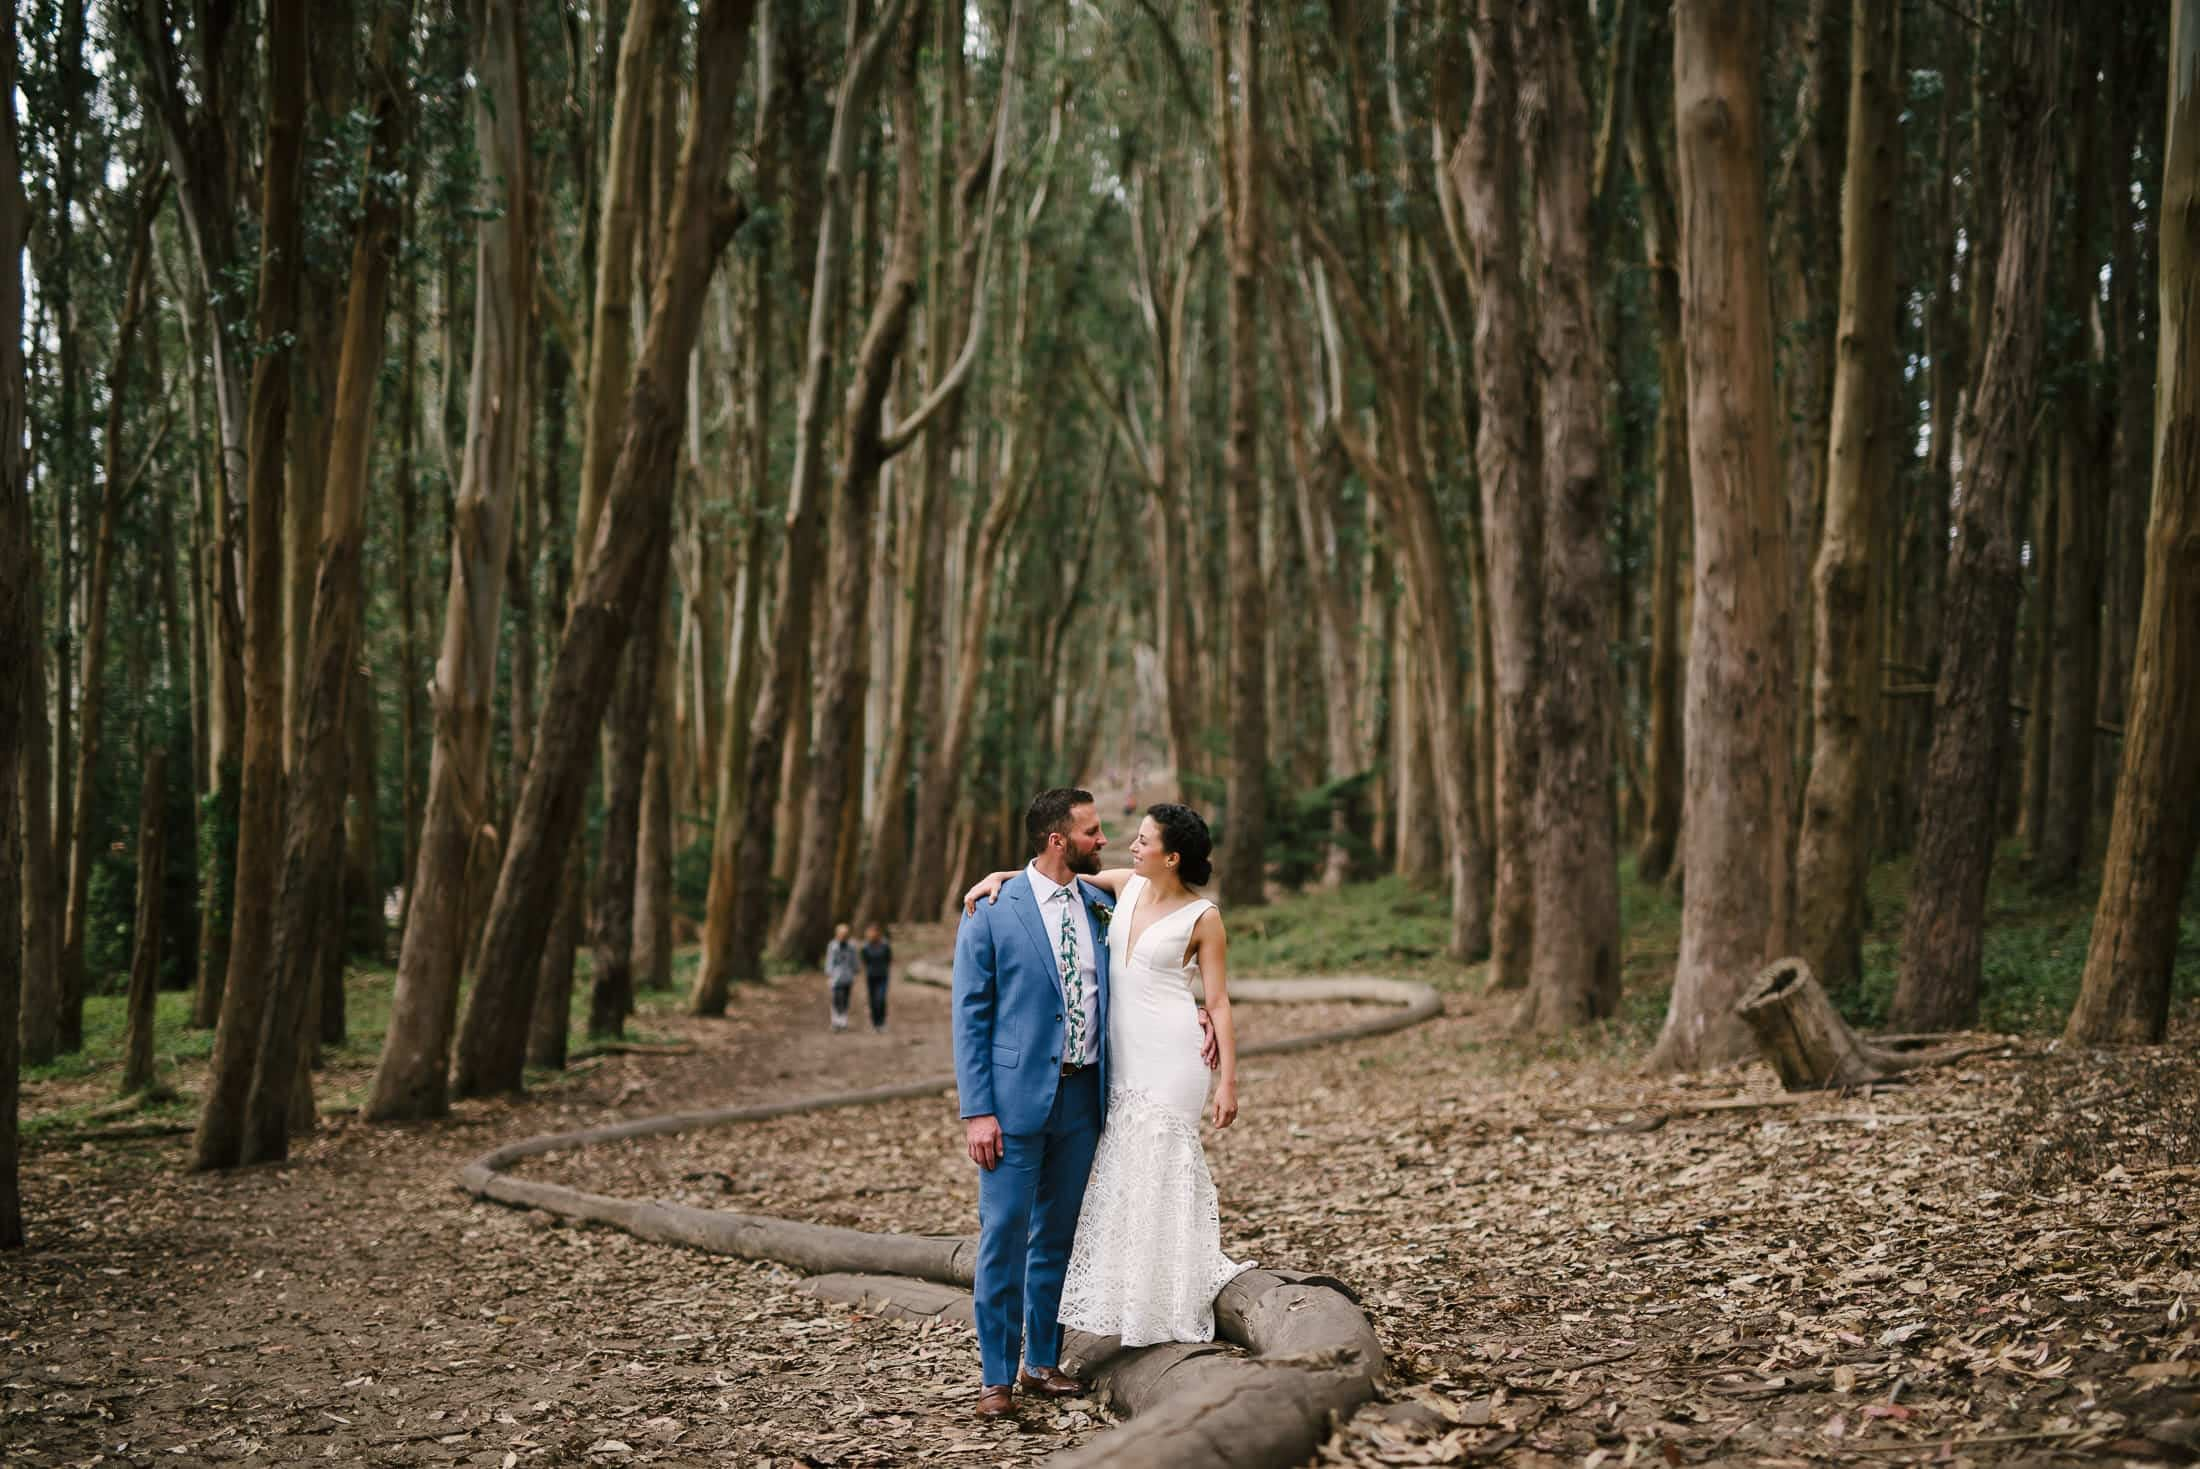 Wood line wedding portraits